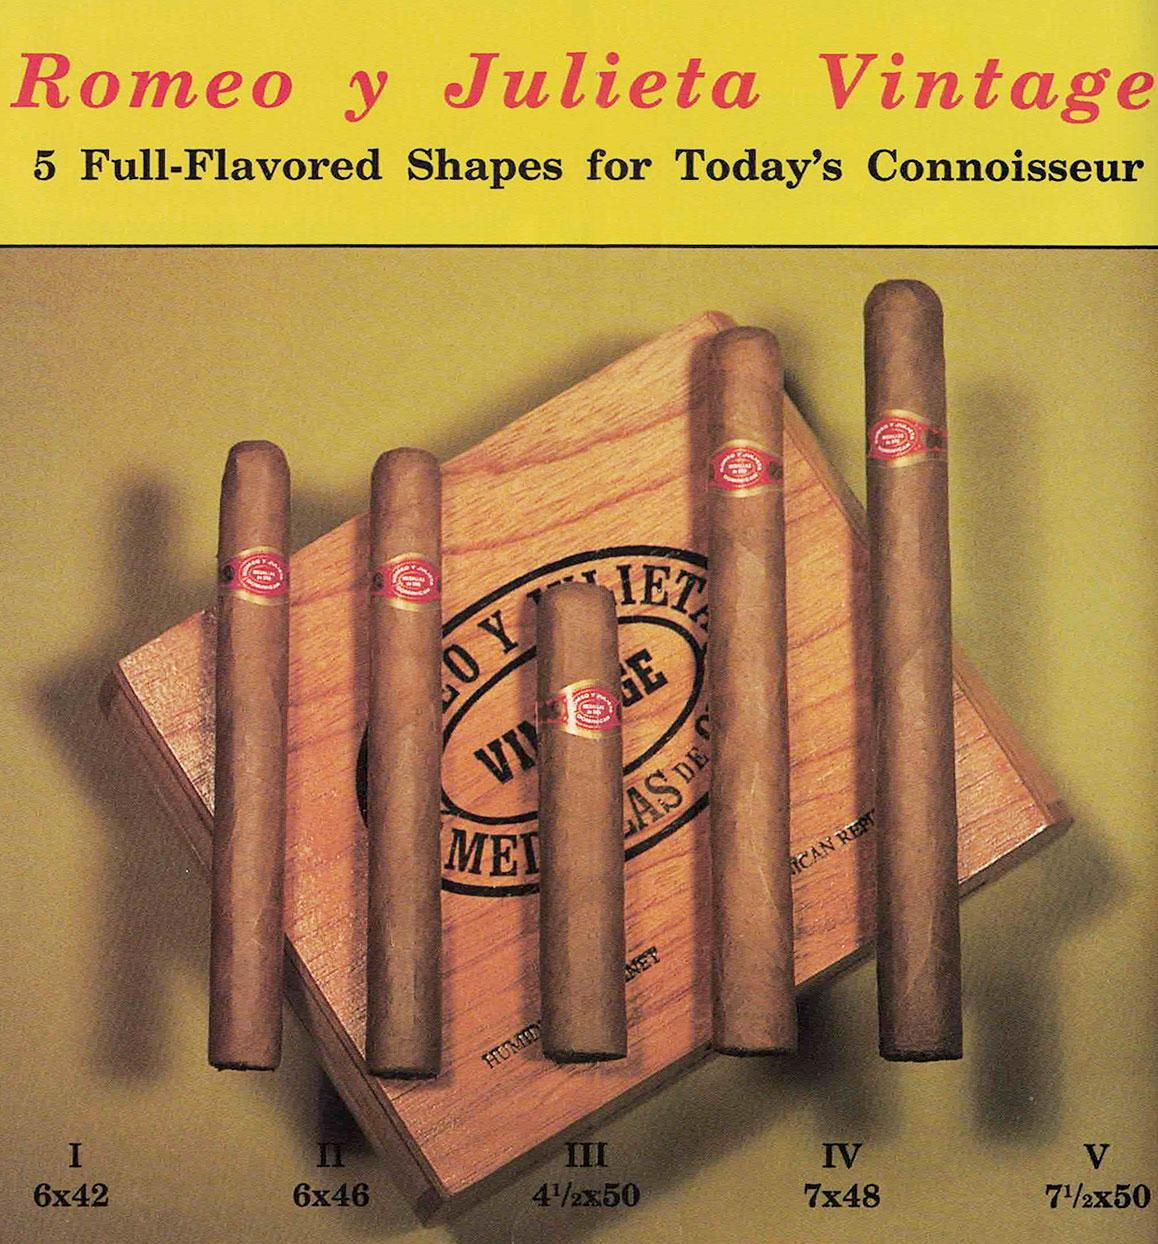 A photo from an old brochure promoting the Romeo y Julieta Vintage line. It was made by Manuel Quesada for Hollco Rohr in the 1990s.